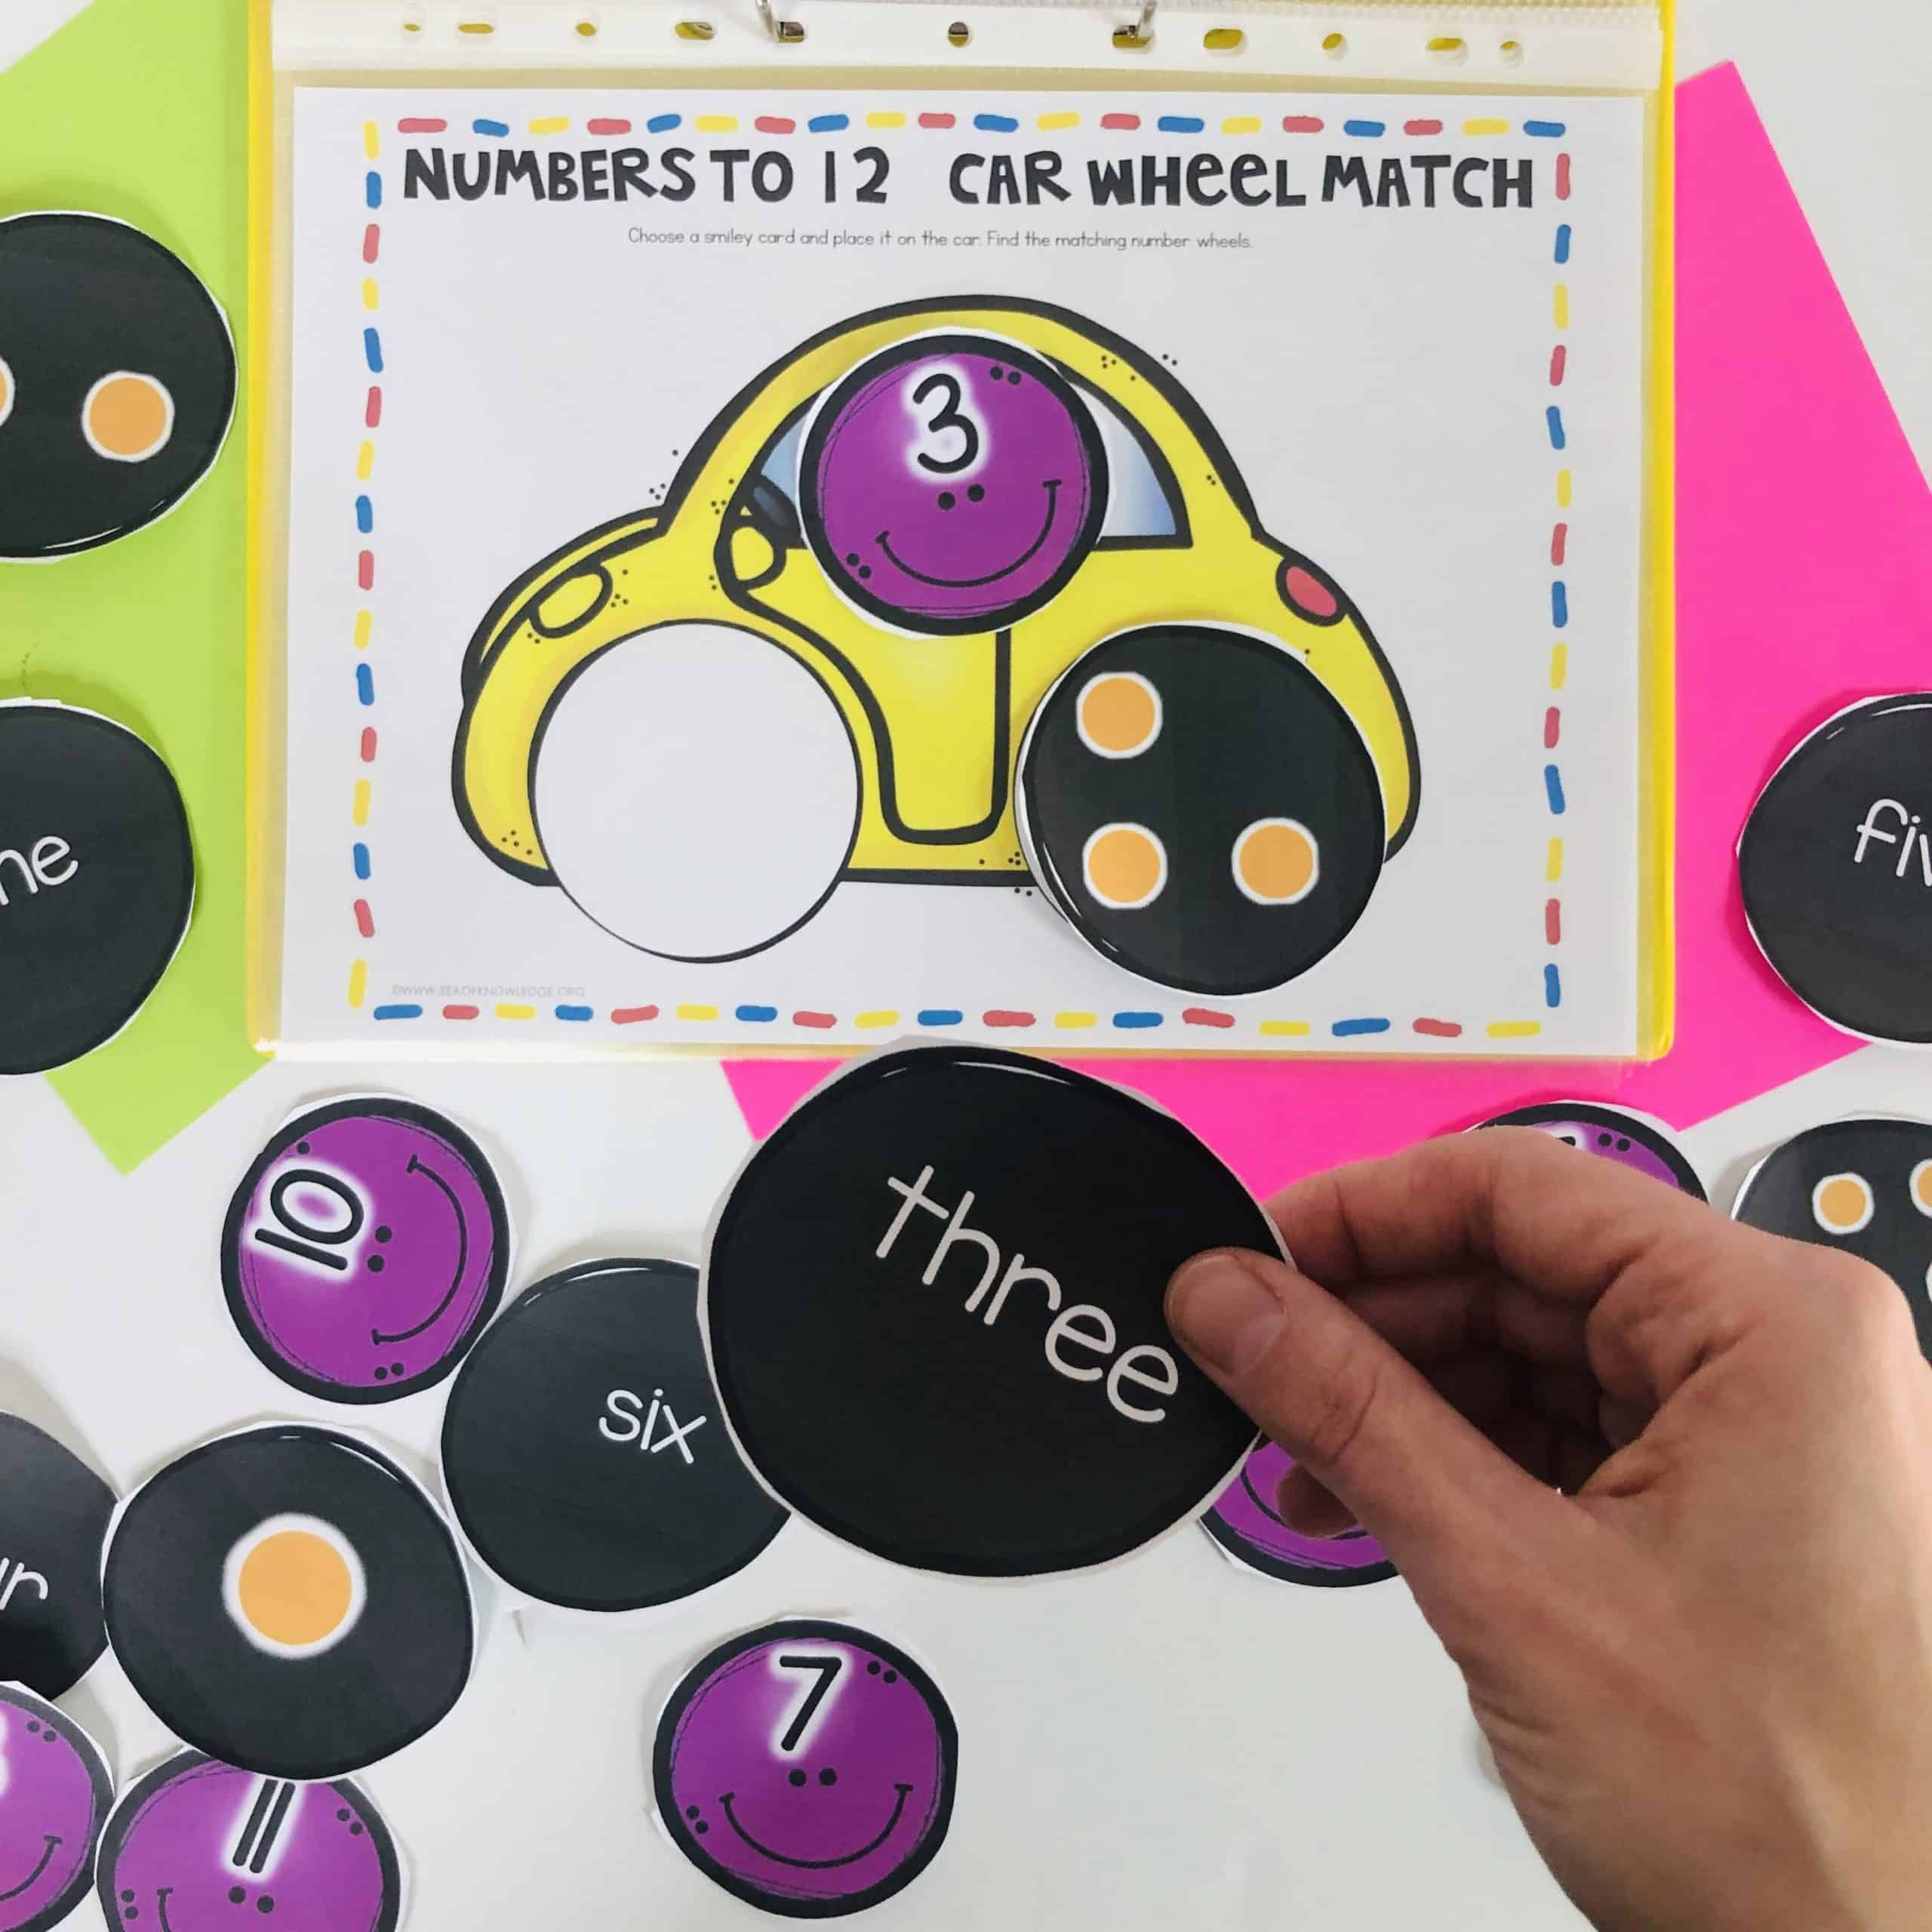 These Numbers 1-10 Busy Book Printable Car Wheel Match mat is the perfect addition to your busy book binder. Have the kids work on matching number digits, number words and one-to-one correspondence by using these super fun car themed printable mat. Place it into a plastic sleeve and you're set!